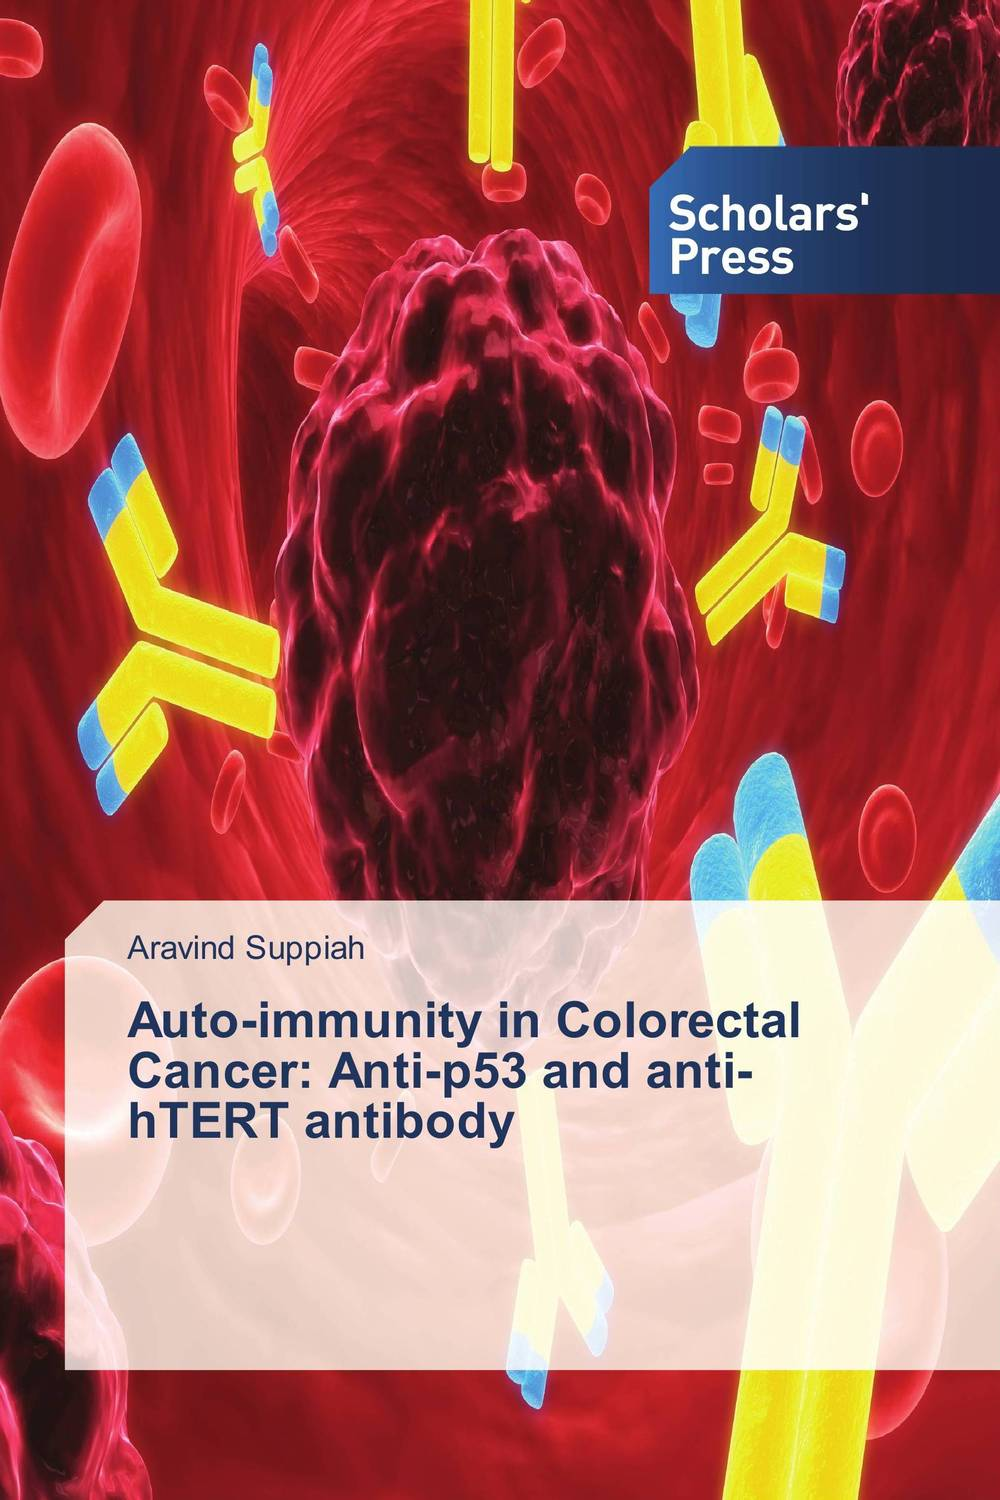 Auto-immunity in Colorectal Cancer: Anti-p53 and anti-hTERT antibody colorectal cancer